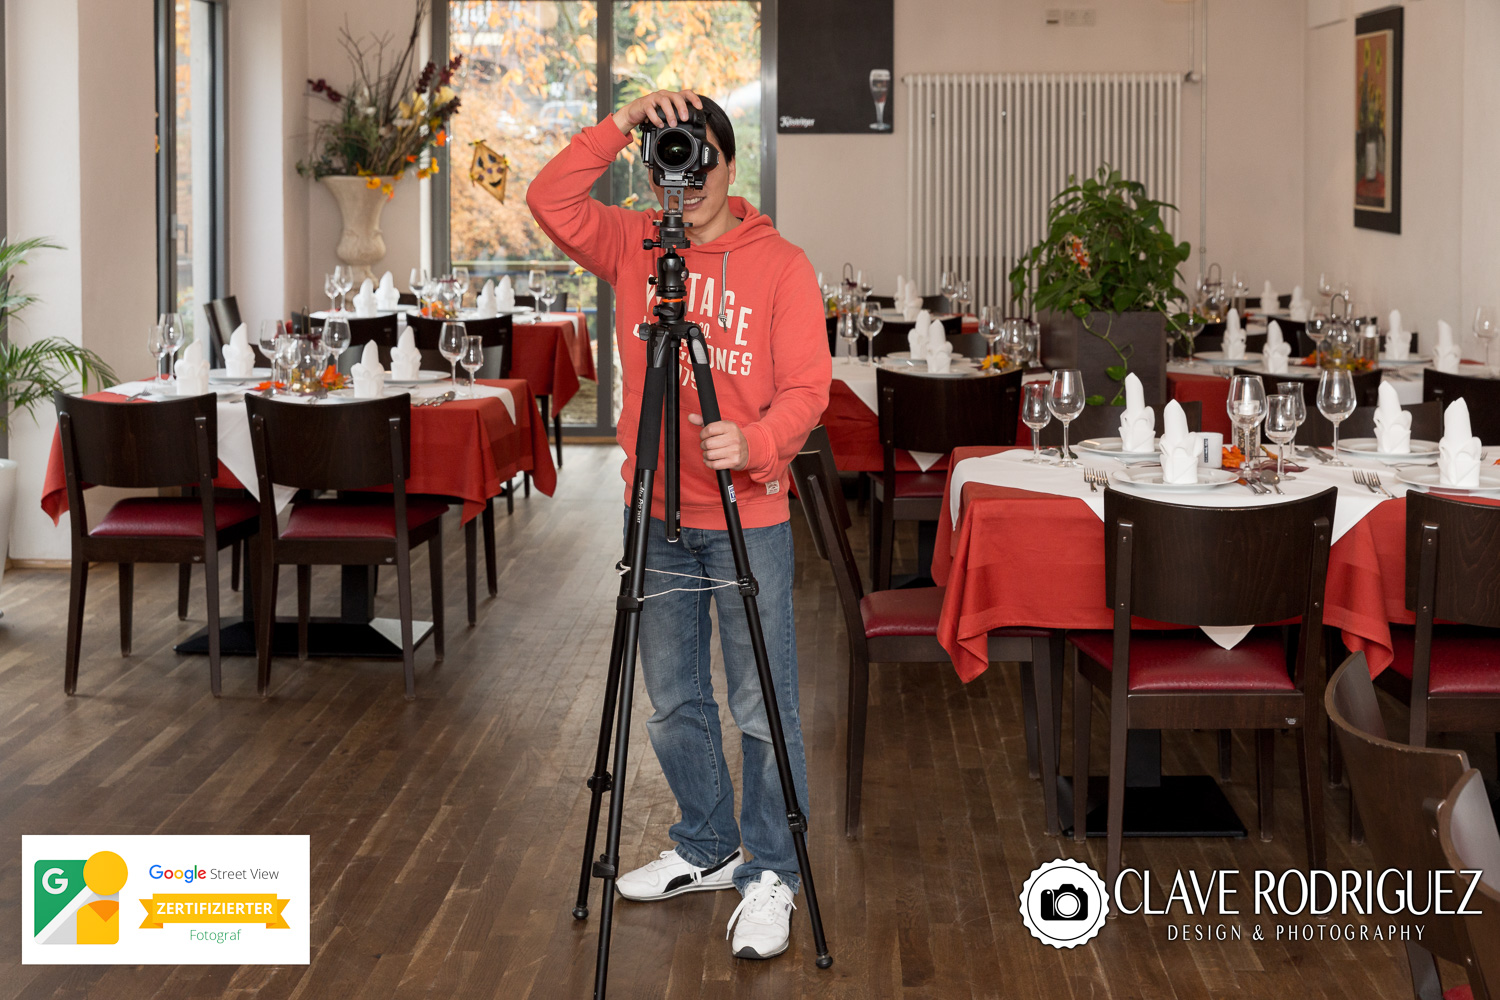 Google Street View Trusted - Business View Fotograf Clave Rodriguez